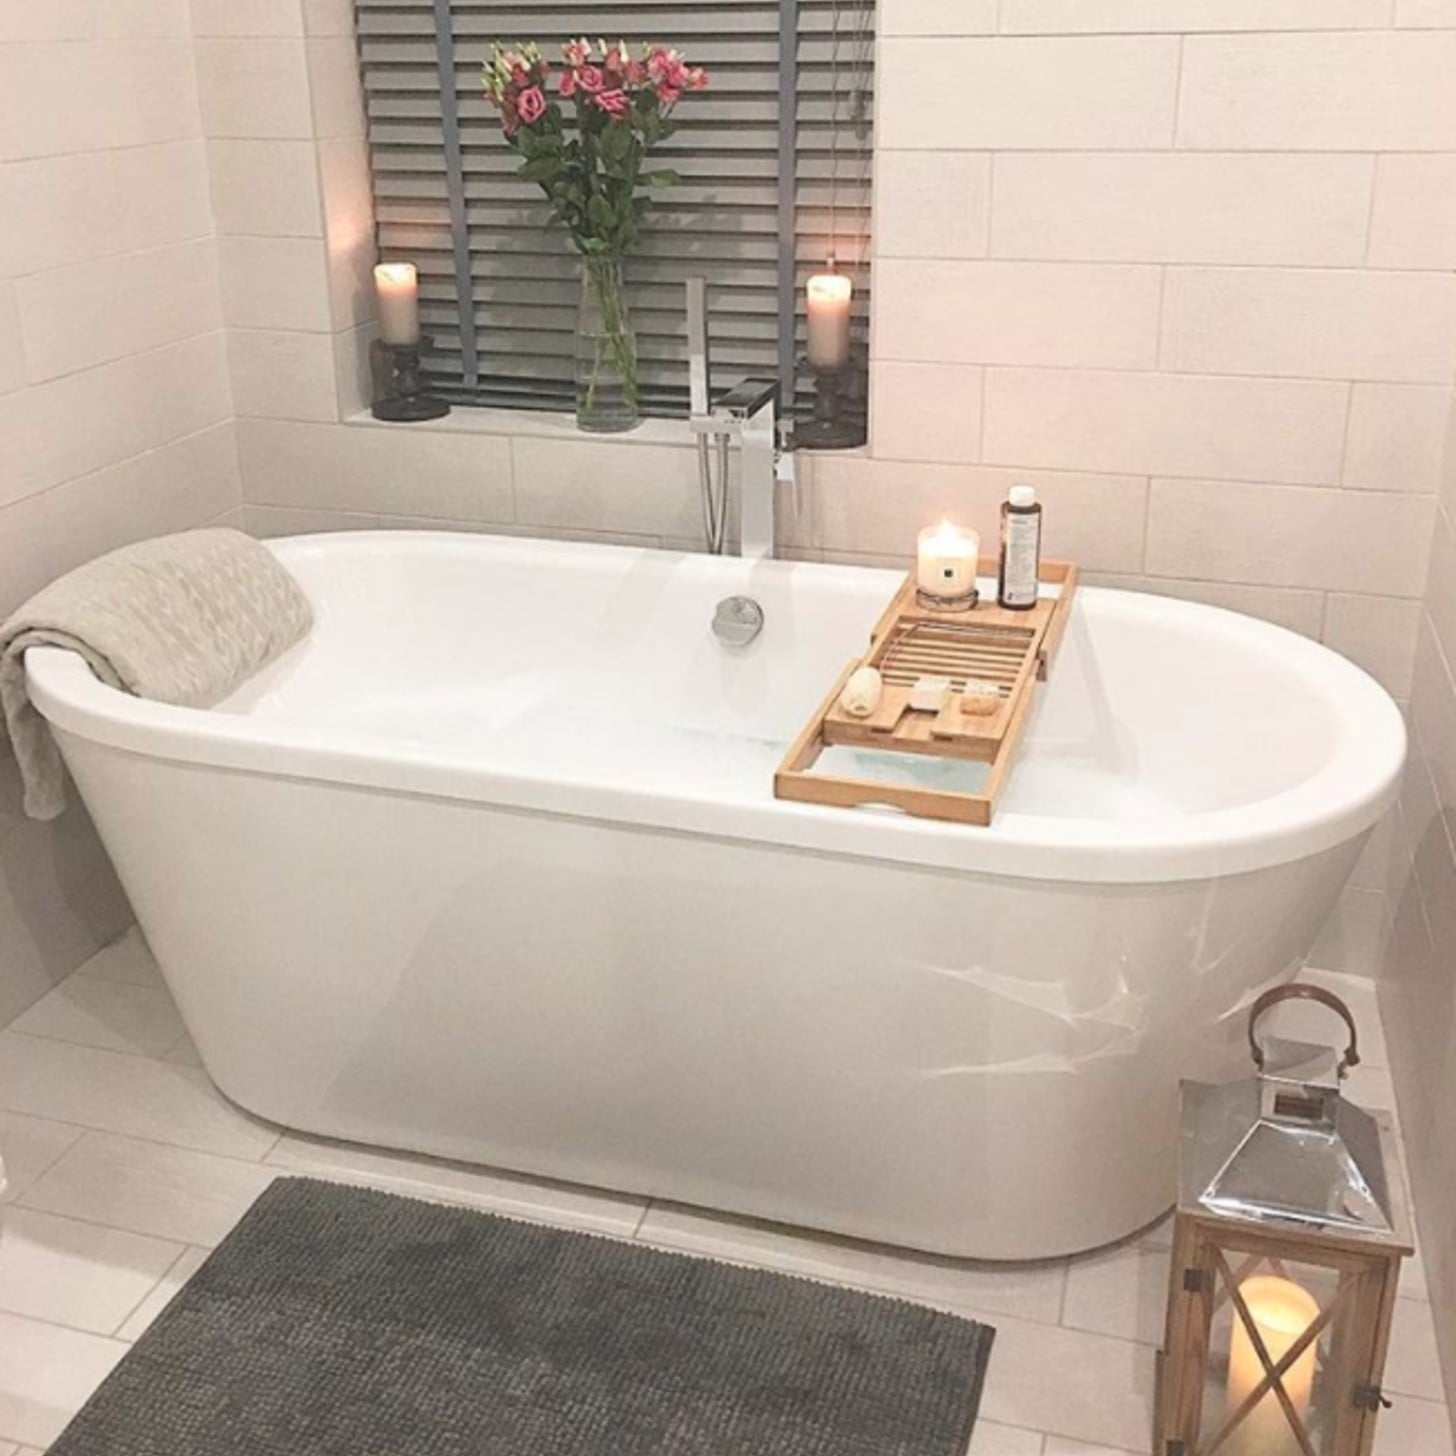 bathroom inspiration popsugar home uk - Bathroom Inspiration